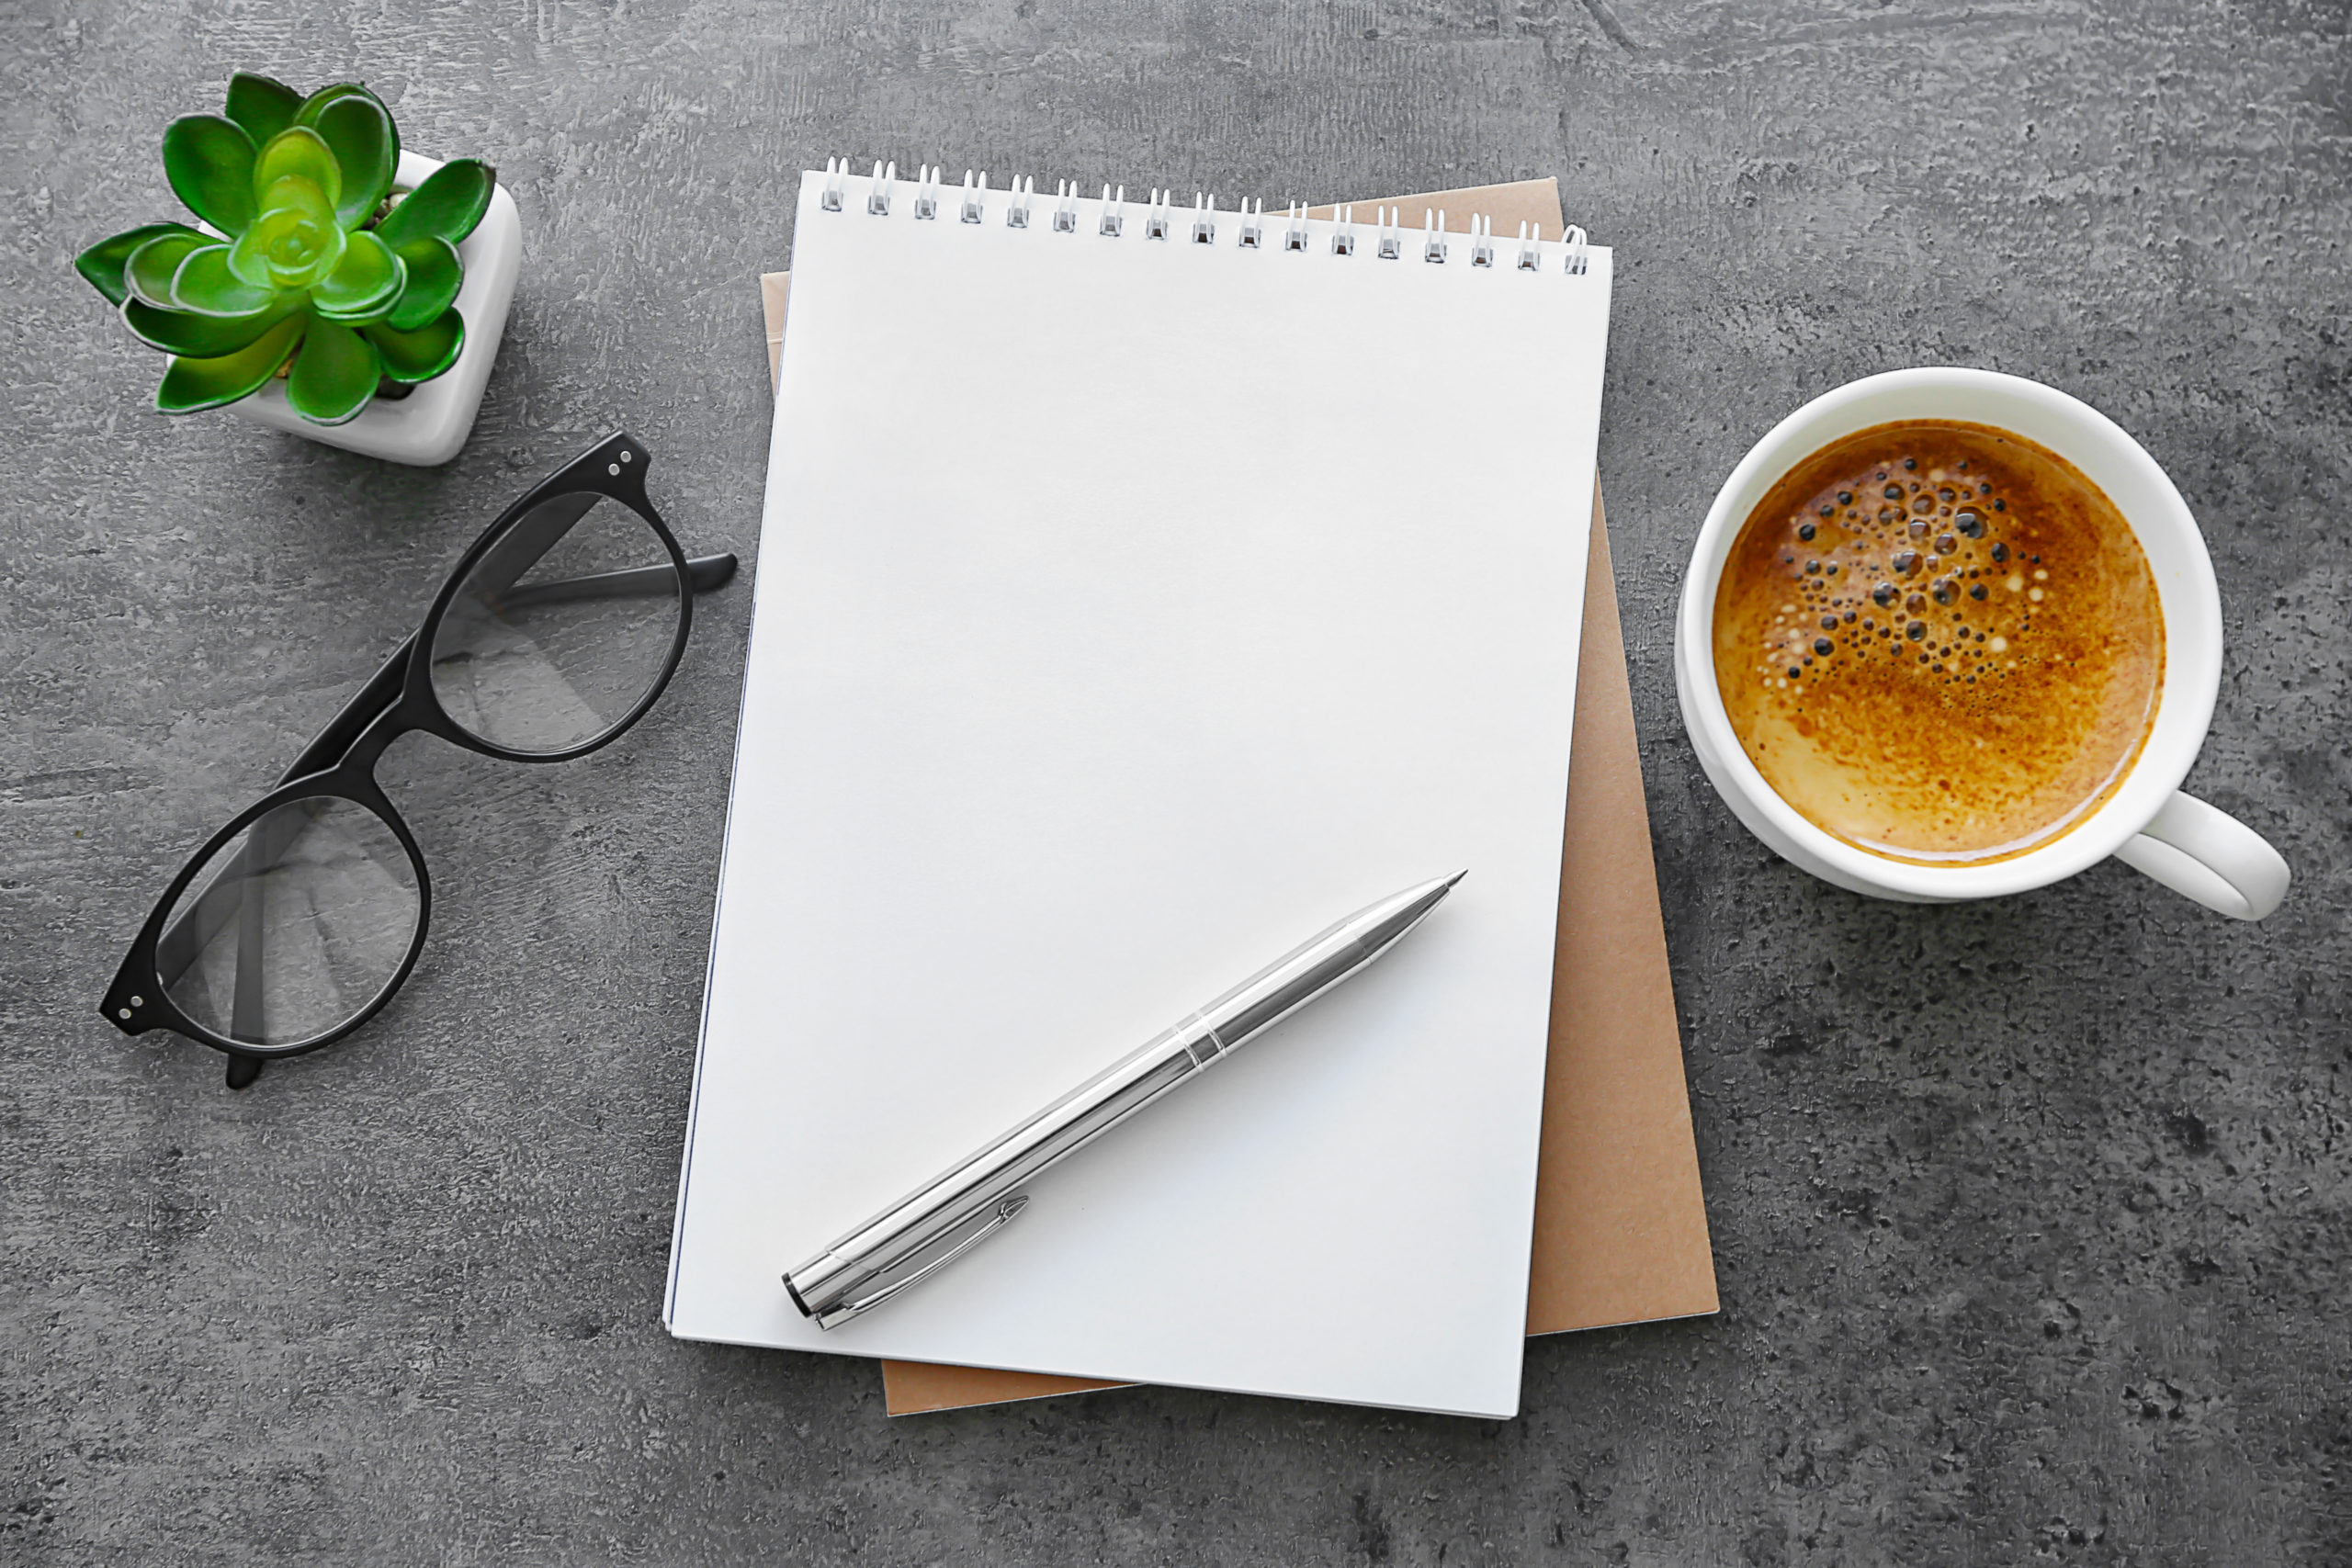 School,Notebook,With,Glasses,And,Coffee,On,Table